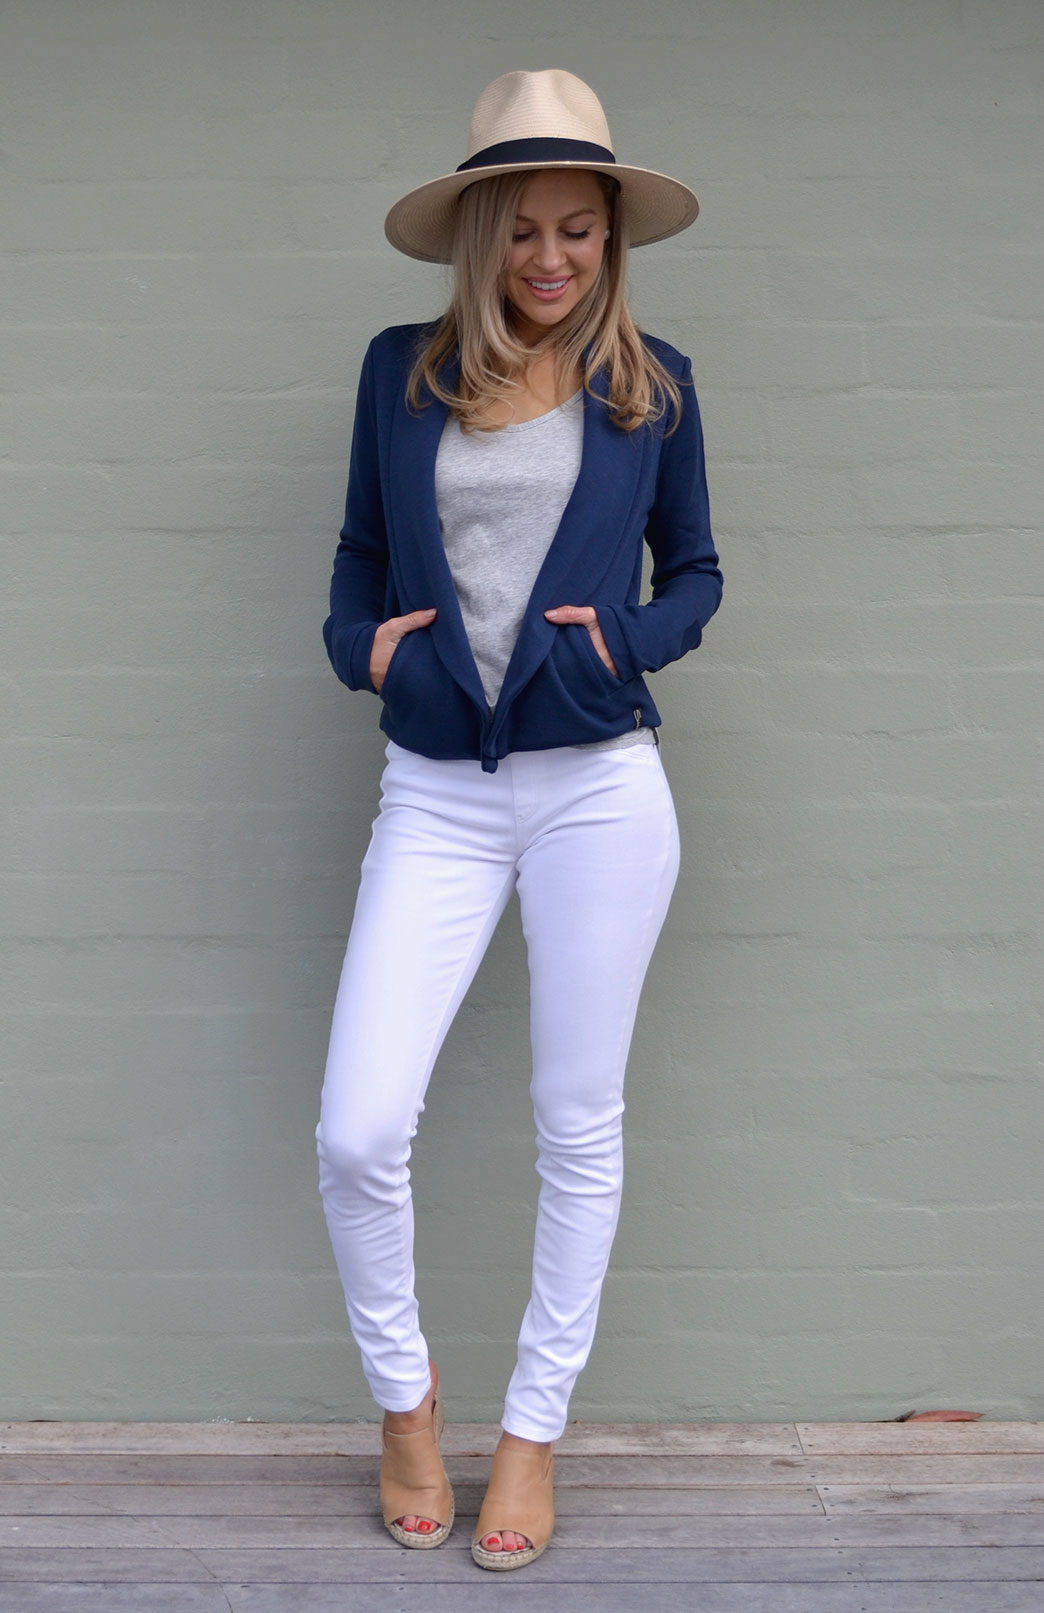 Lapel Jacket - Heavyweight - Women's Indigo Blue Wool Lapel Jacket with side pockets and long sleeves - Smitten Merino Tasmania Australia